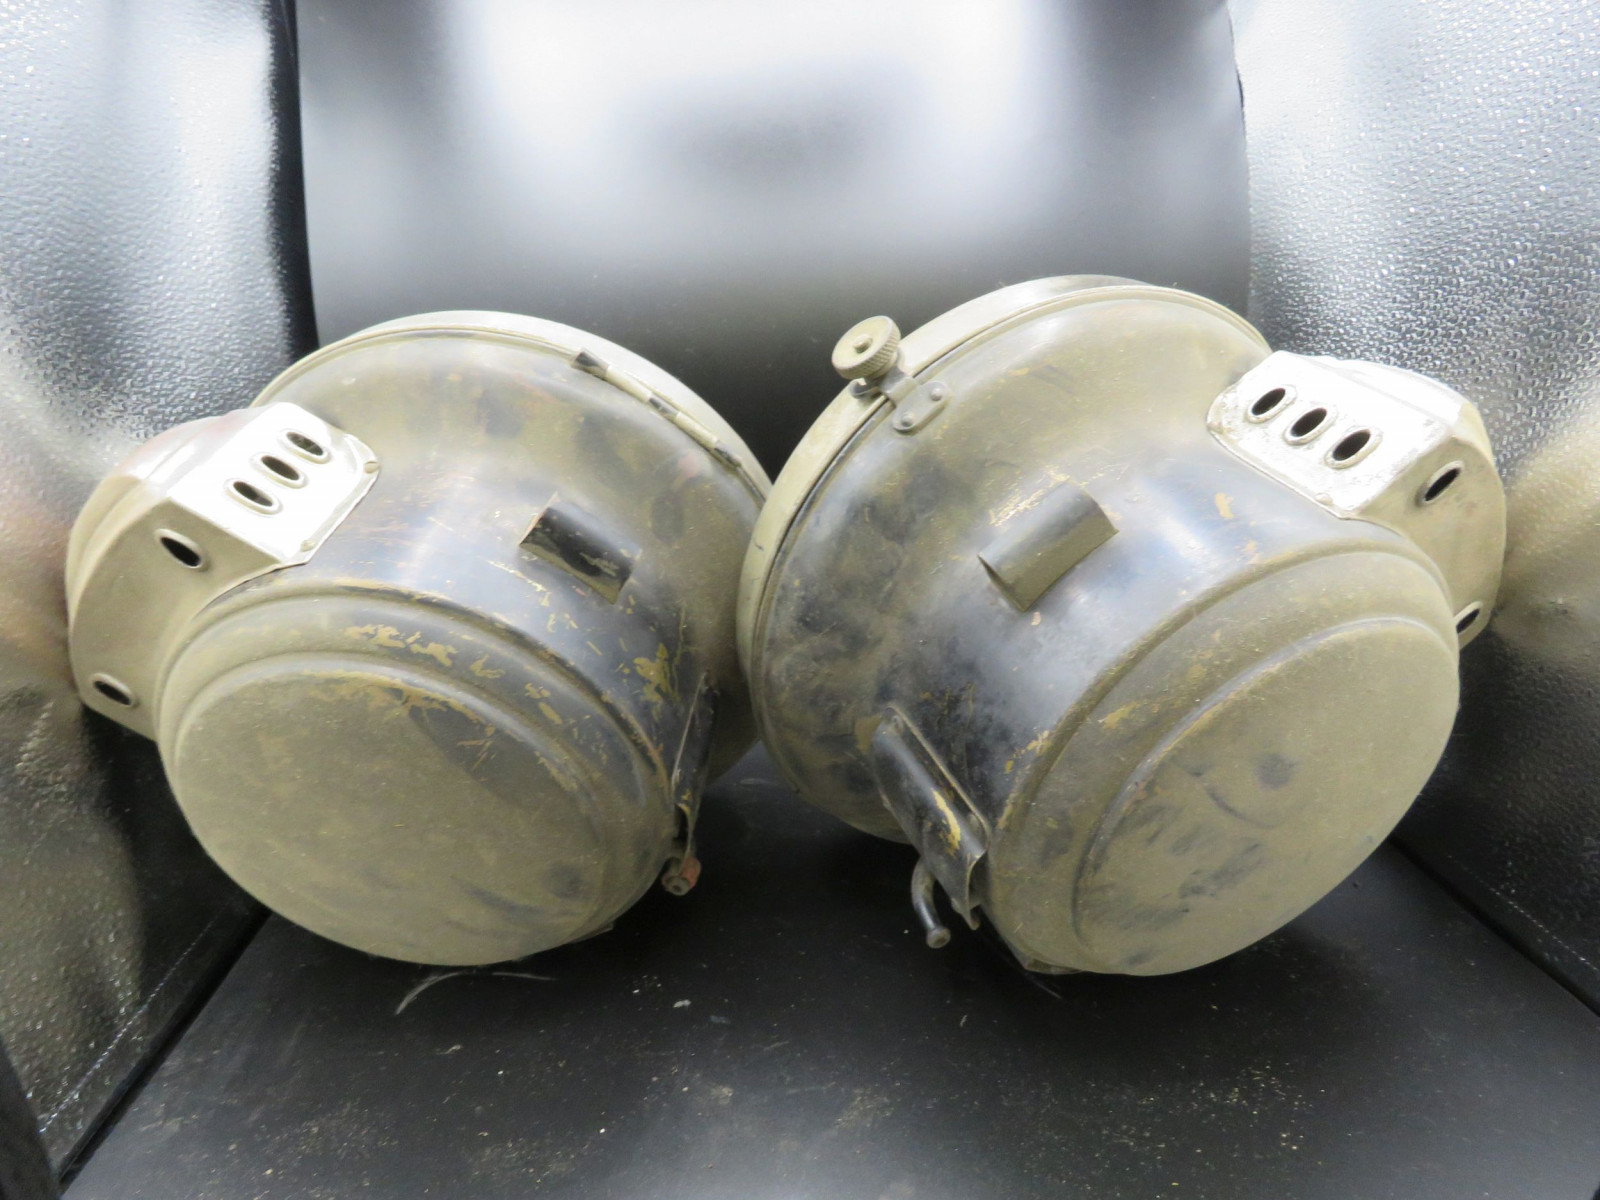 Pair of Vintage Headlights - Image 2